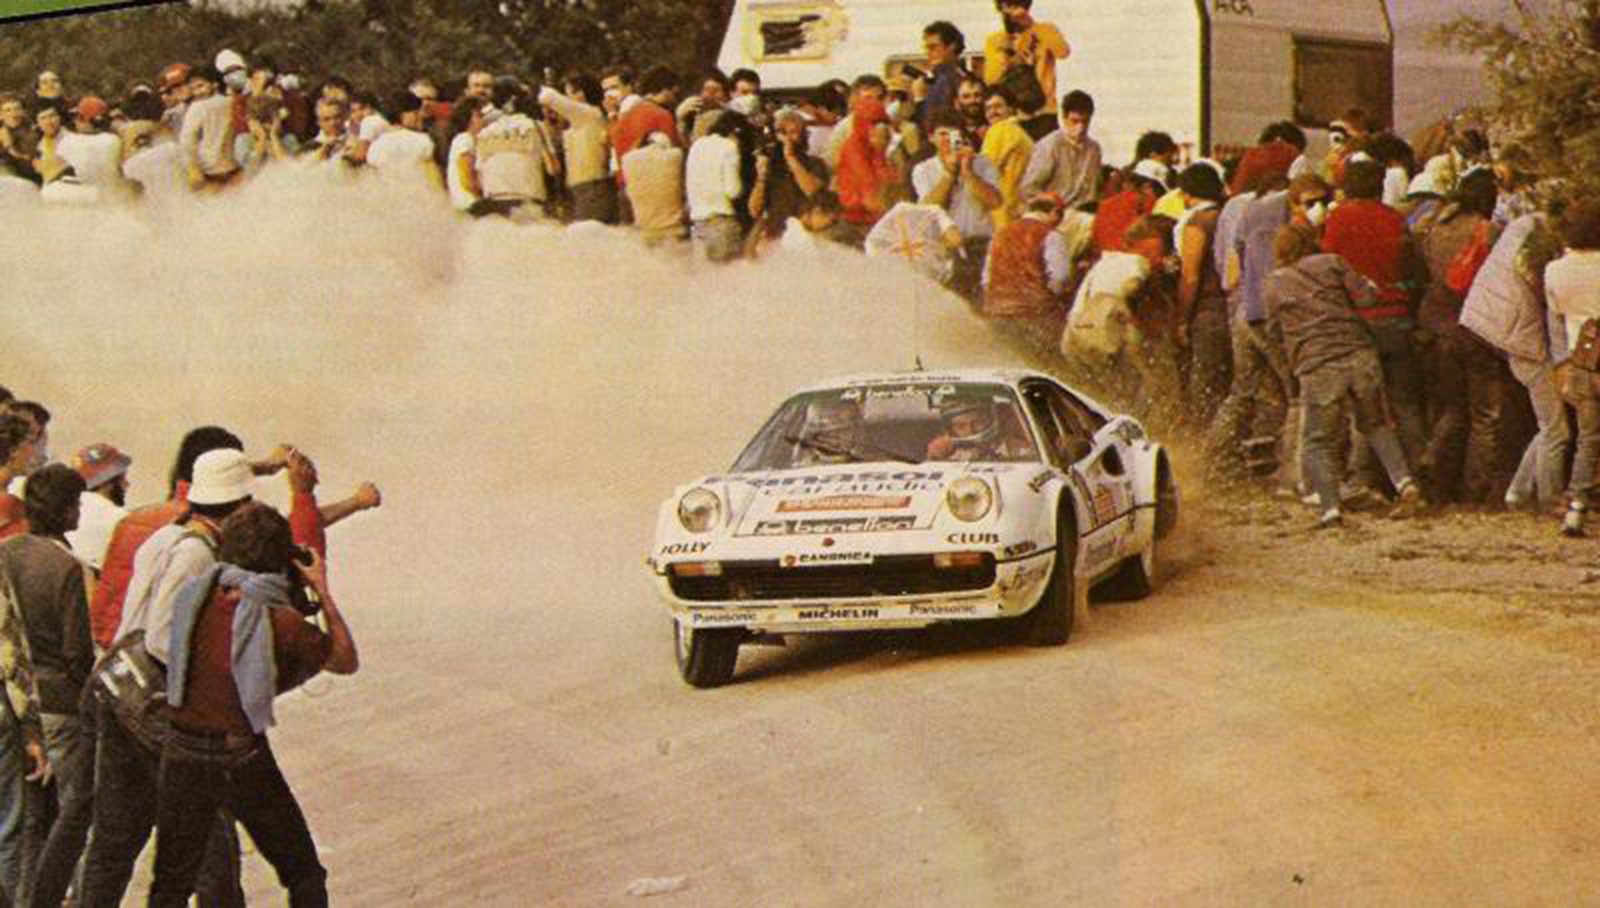 The Michelotto Ferrari 308 Group 4 was the brand's gateway into rally racing.